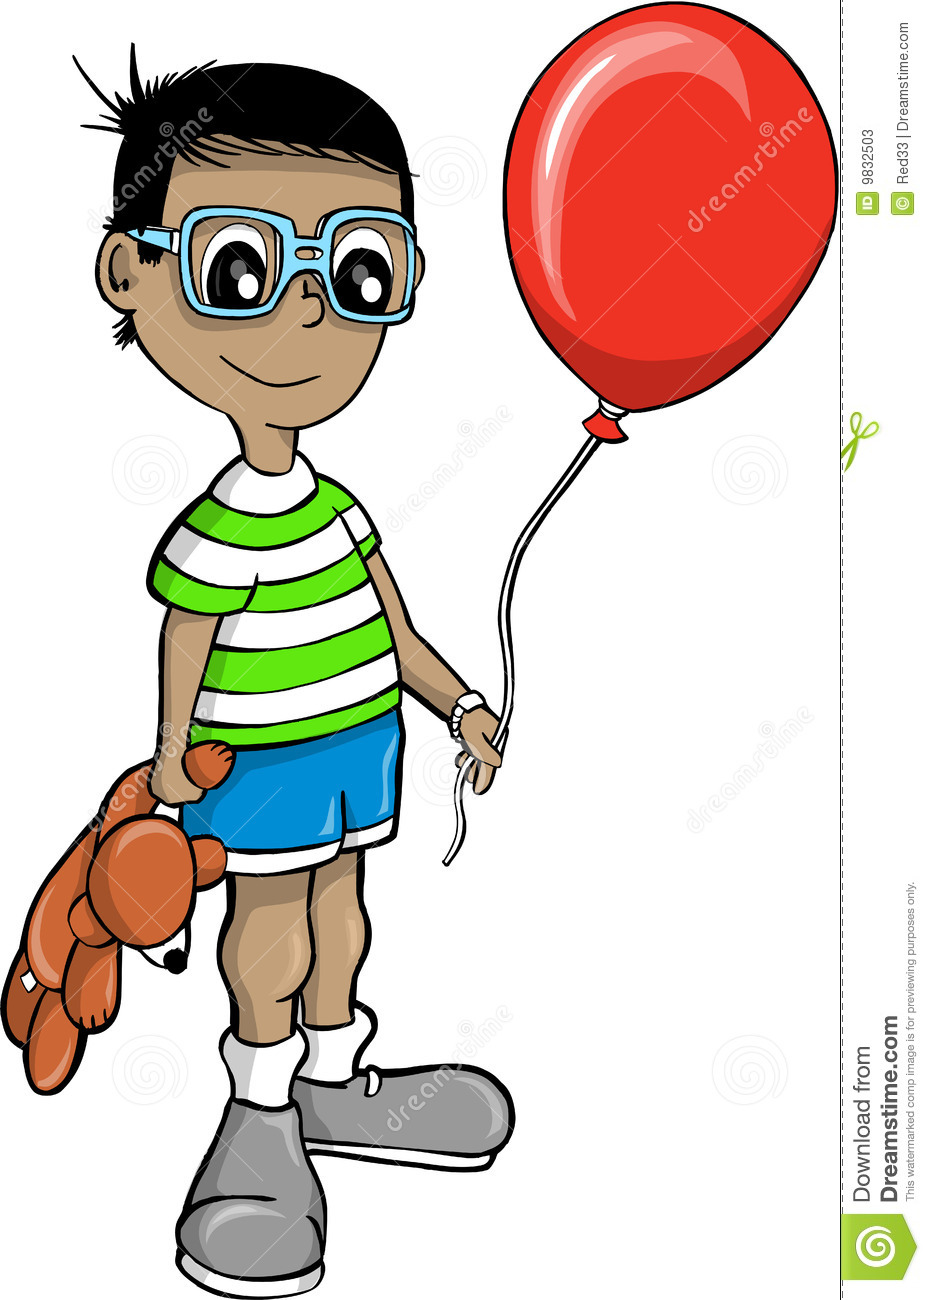 Boy With Balloon Vector Illustration Stock Photos - Image: 9832503